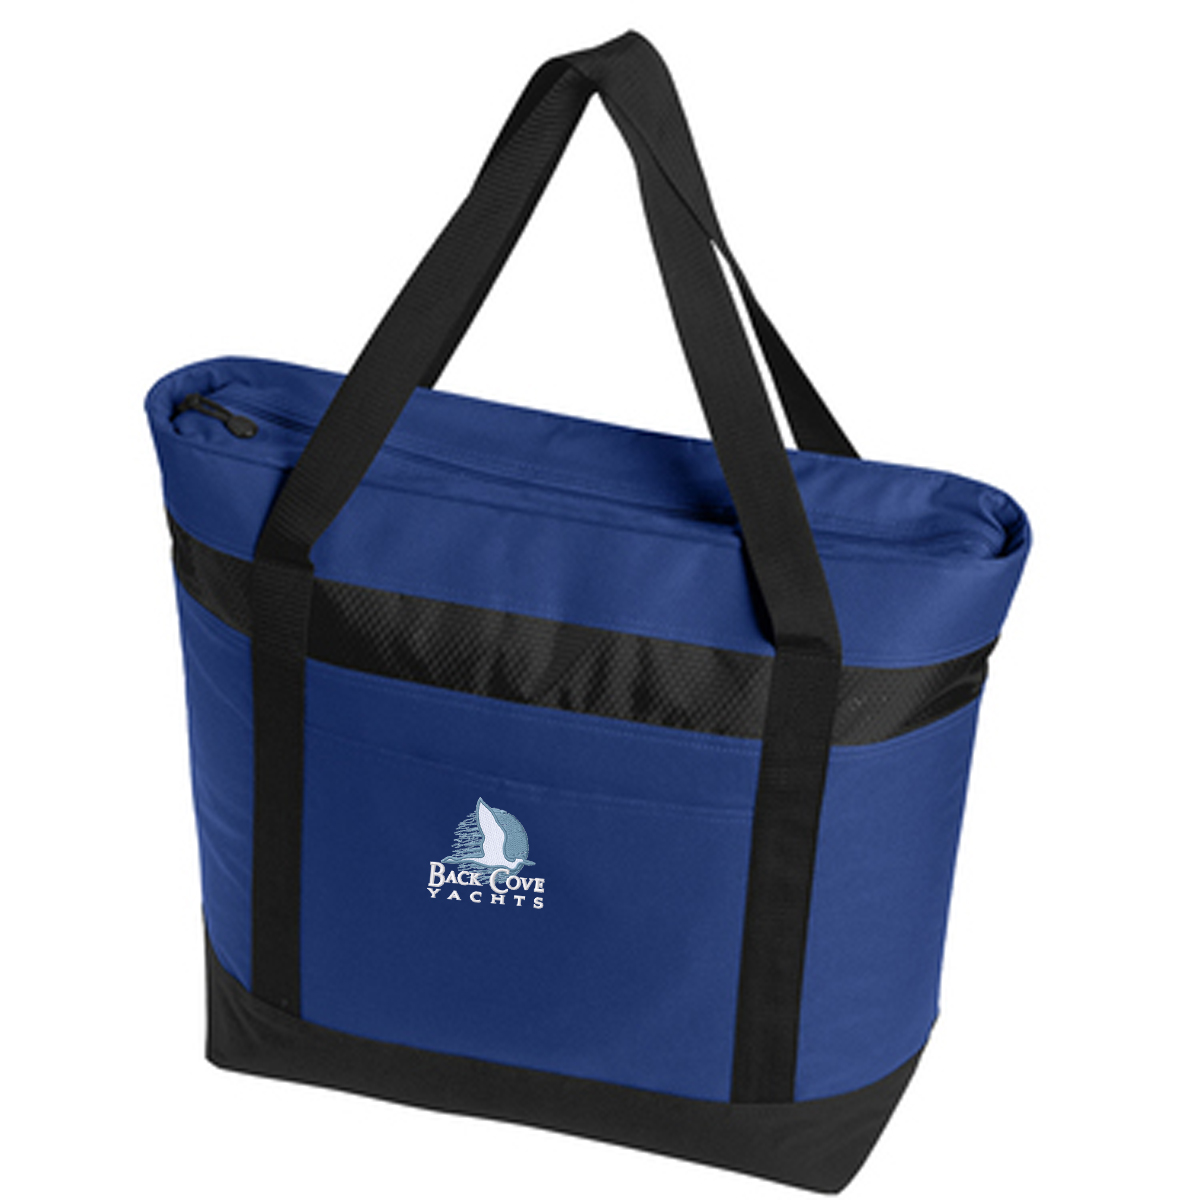 Back Cove Yachts - Large Cooler Tote